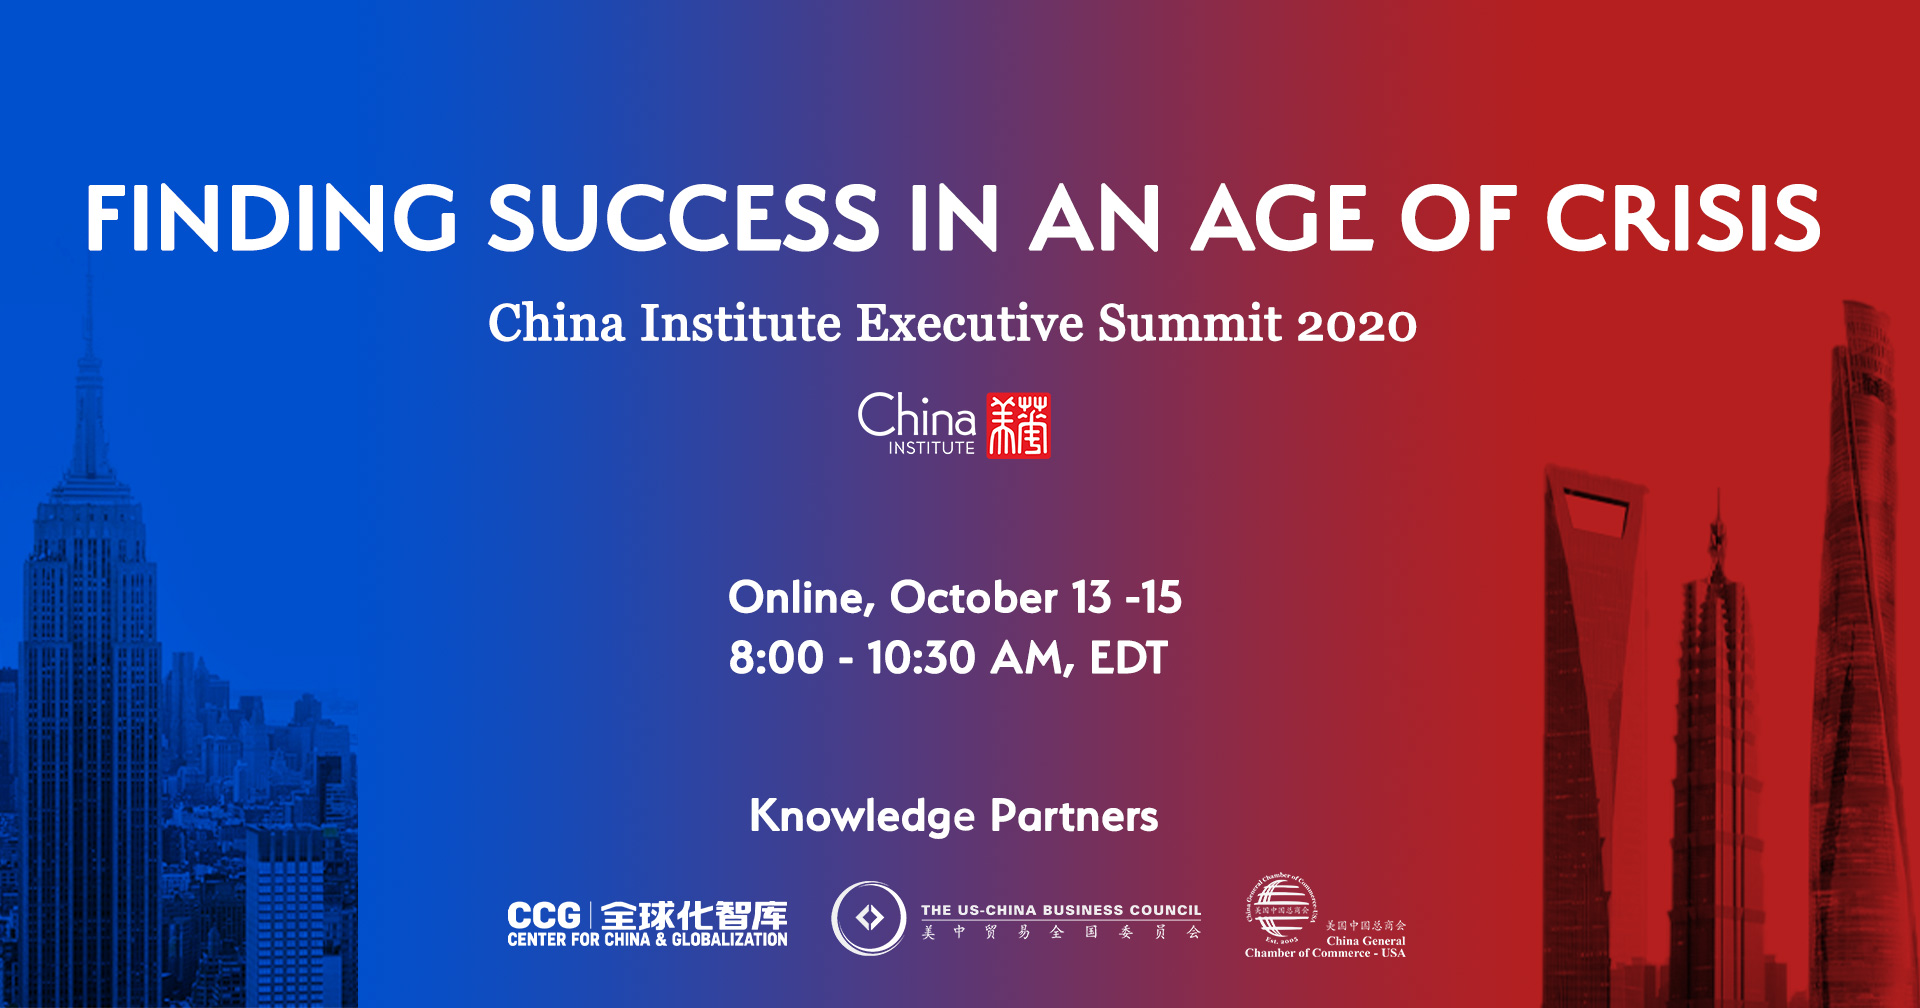 China Institute Offers a Pragmatic Way Forward for the U.S and China